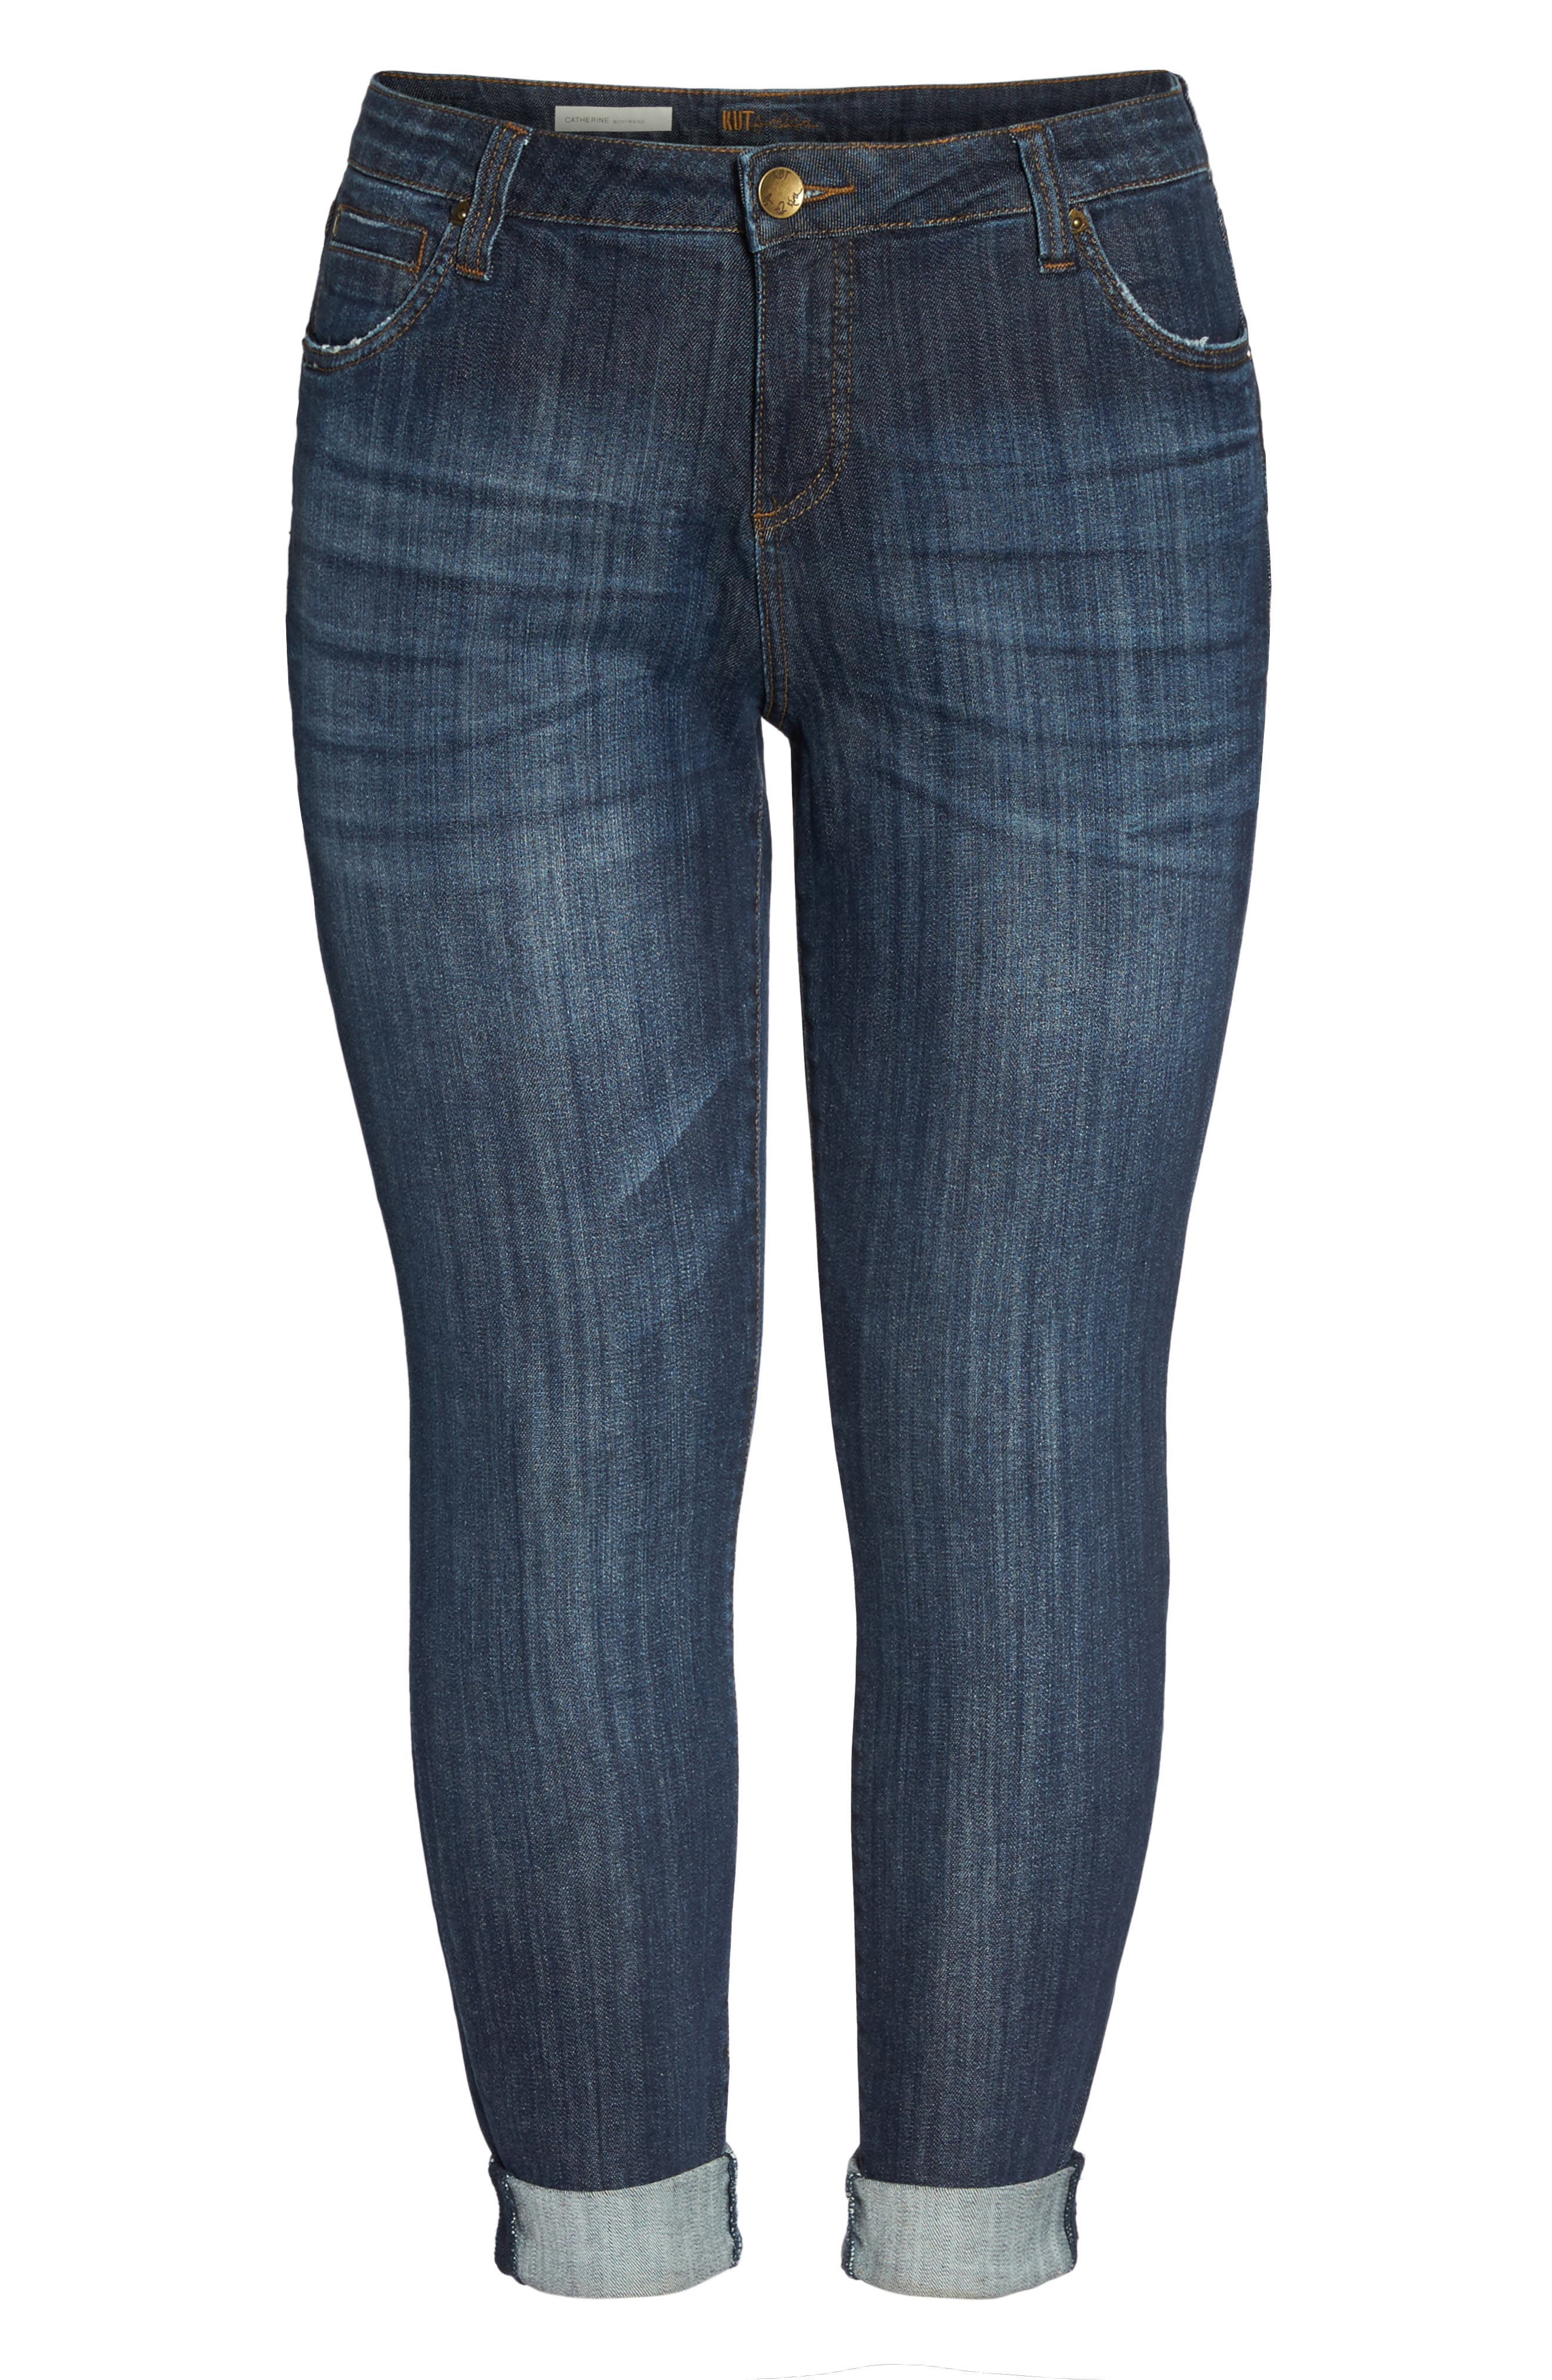 KUT FROM THE KLOTH, Catherine Boyfriend Jeans, Alternate thumbnail 7, color, 489